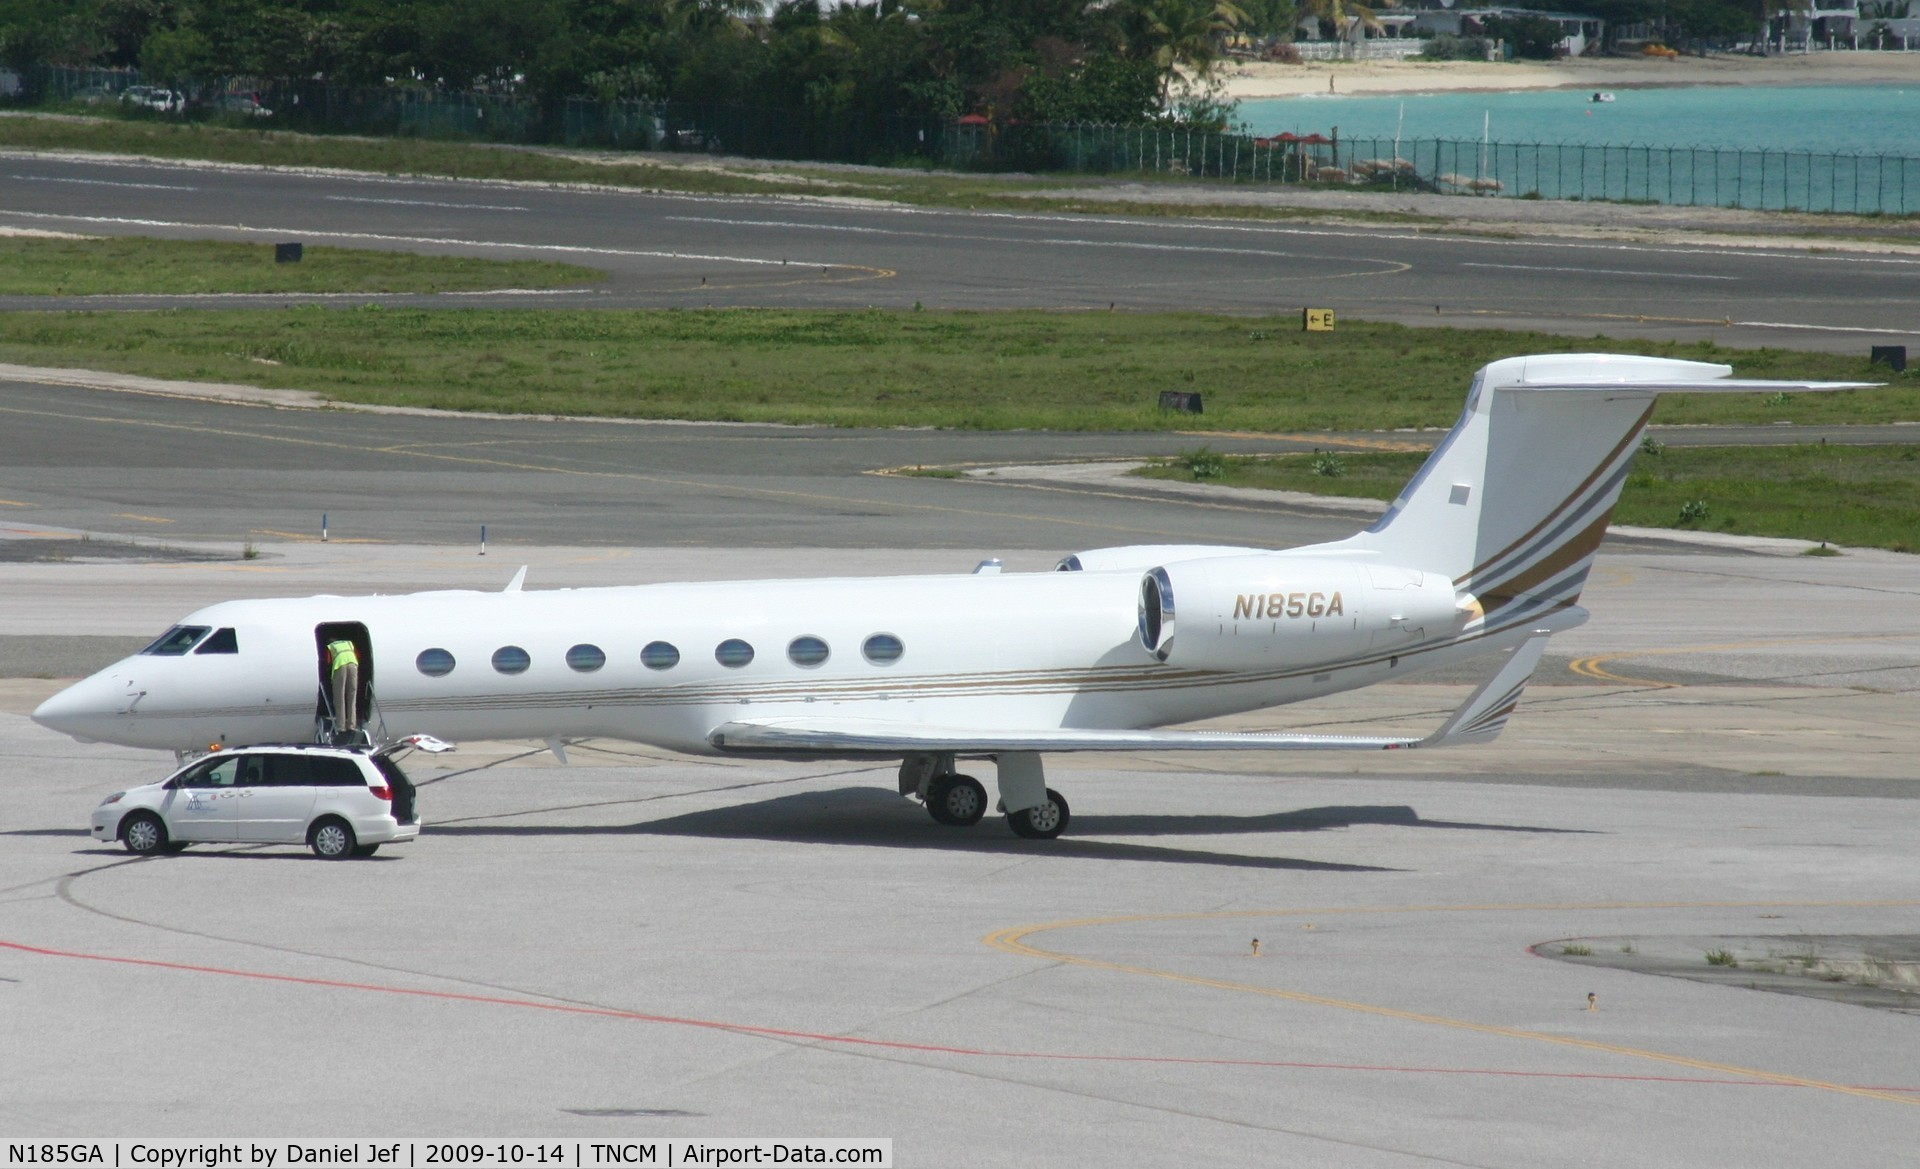 N185GA, 2008 Gulfstream Aerospace GV-SP (G550) C/N 5185, As you see they are being handle by ground handlers